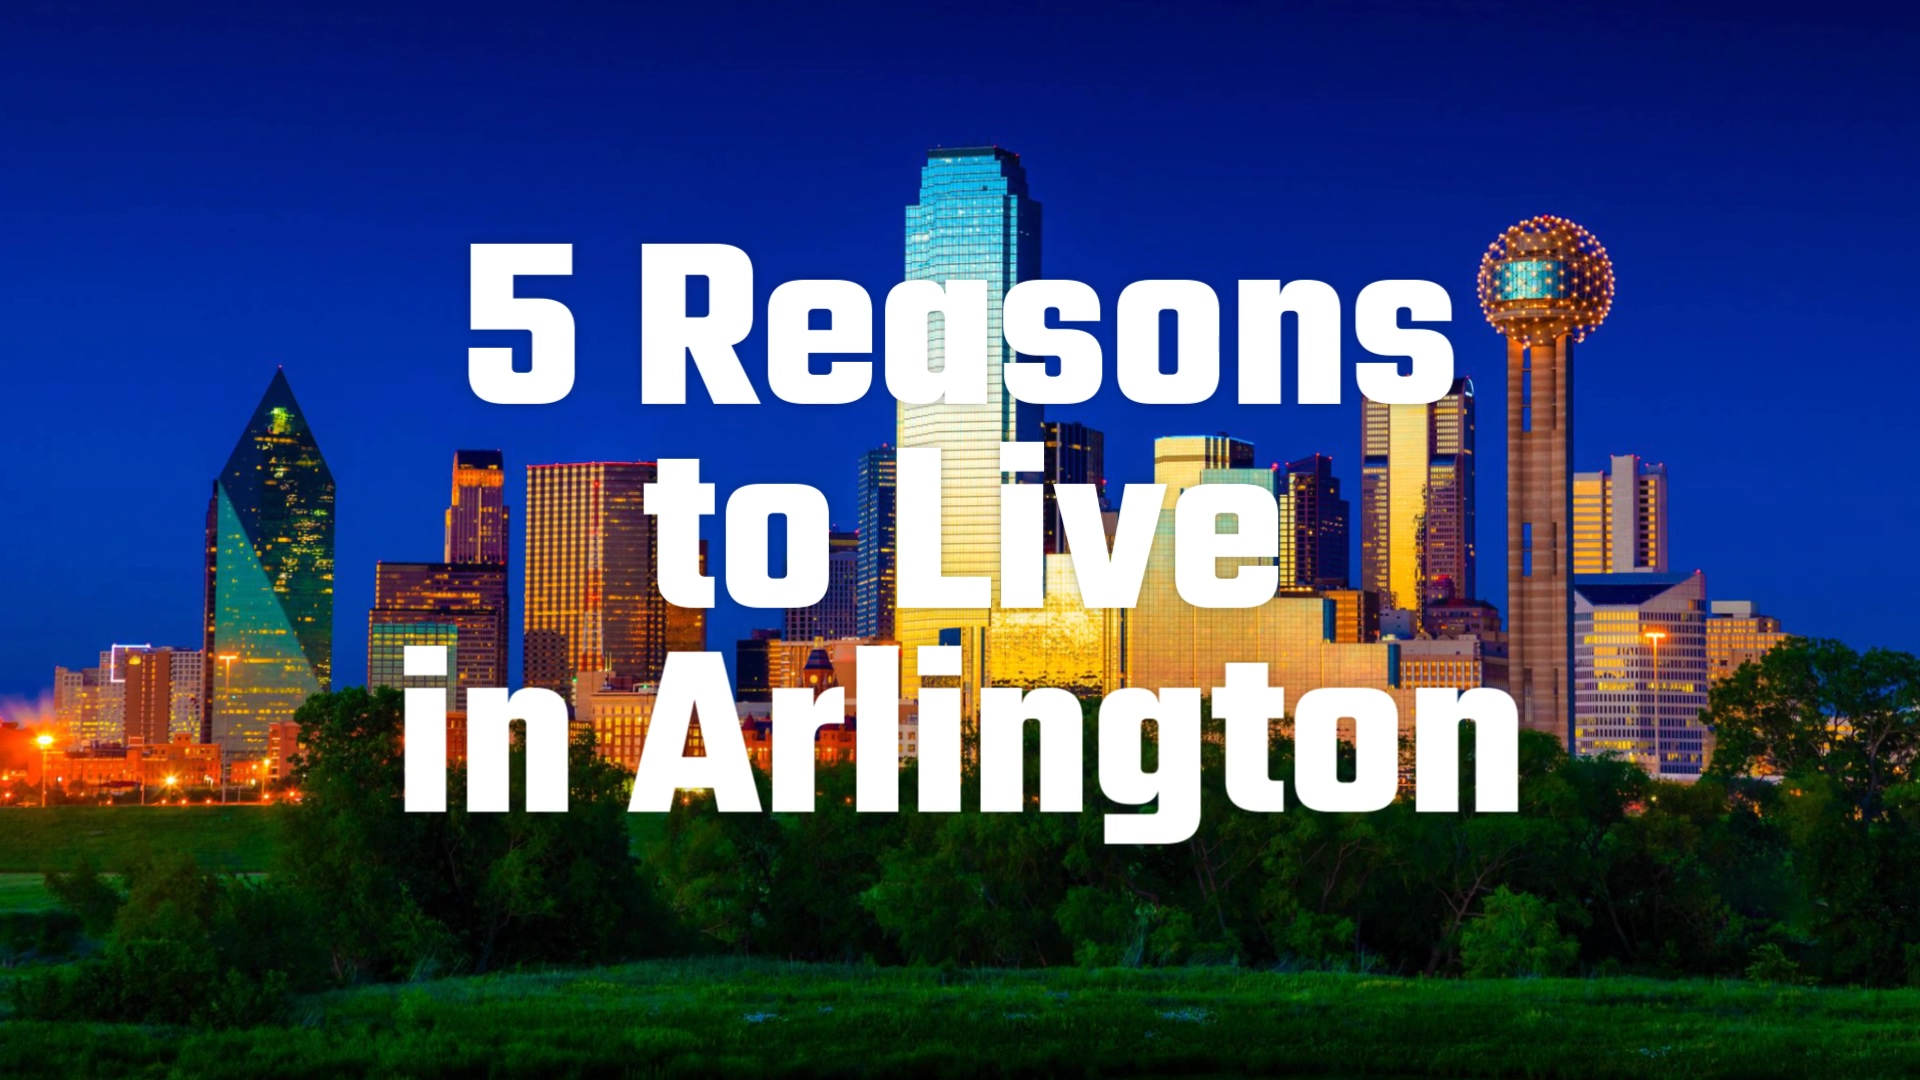 REVISED_5_Reasons_to_Live_in_Arlington_1080p-FINAL